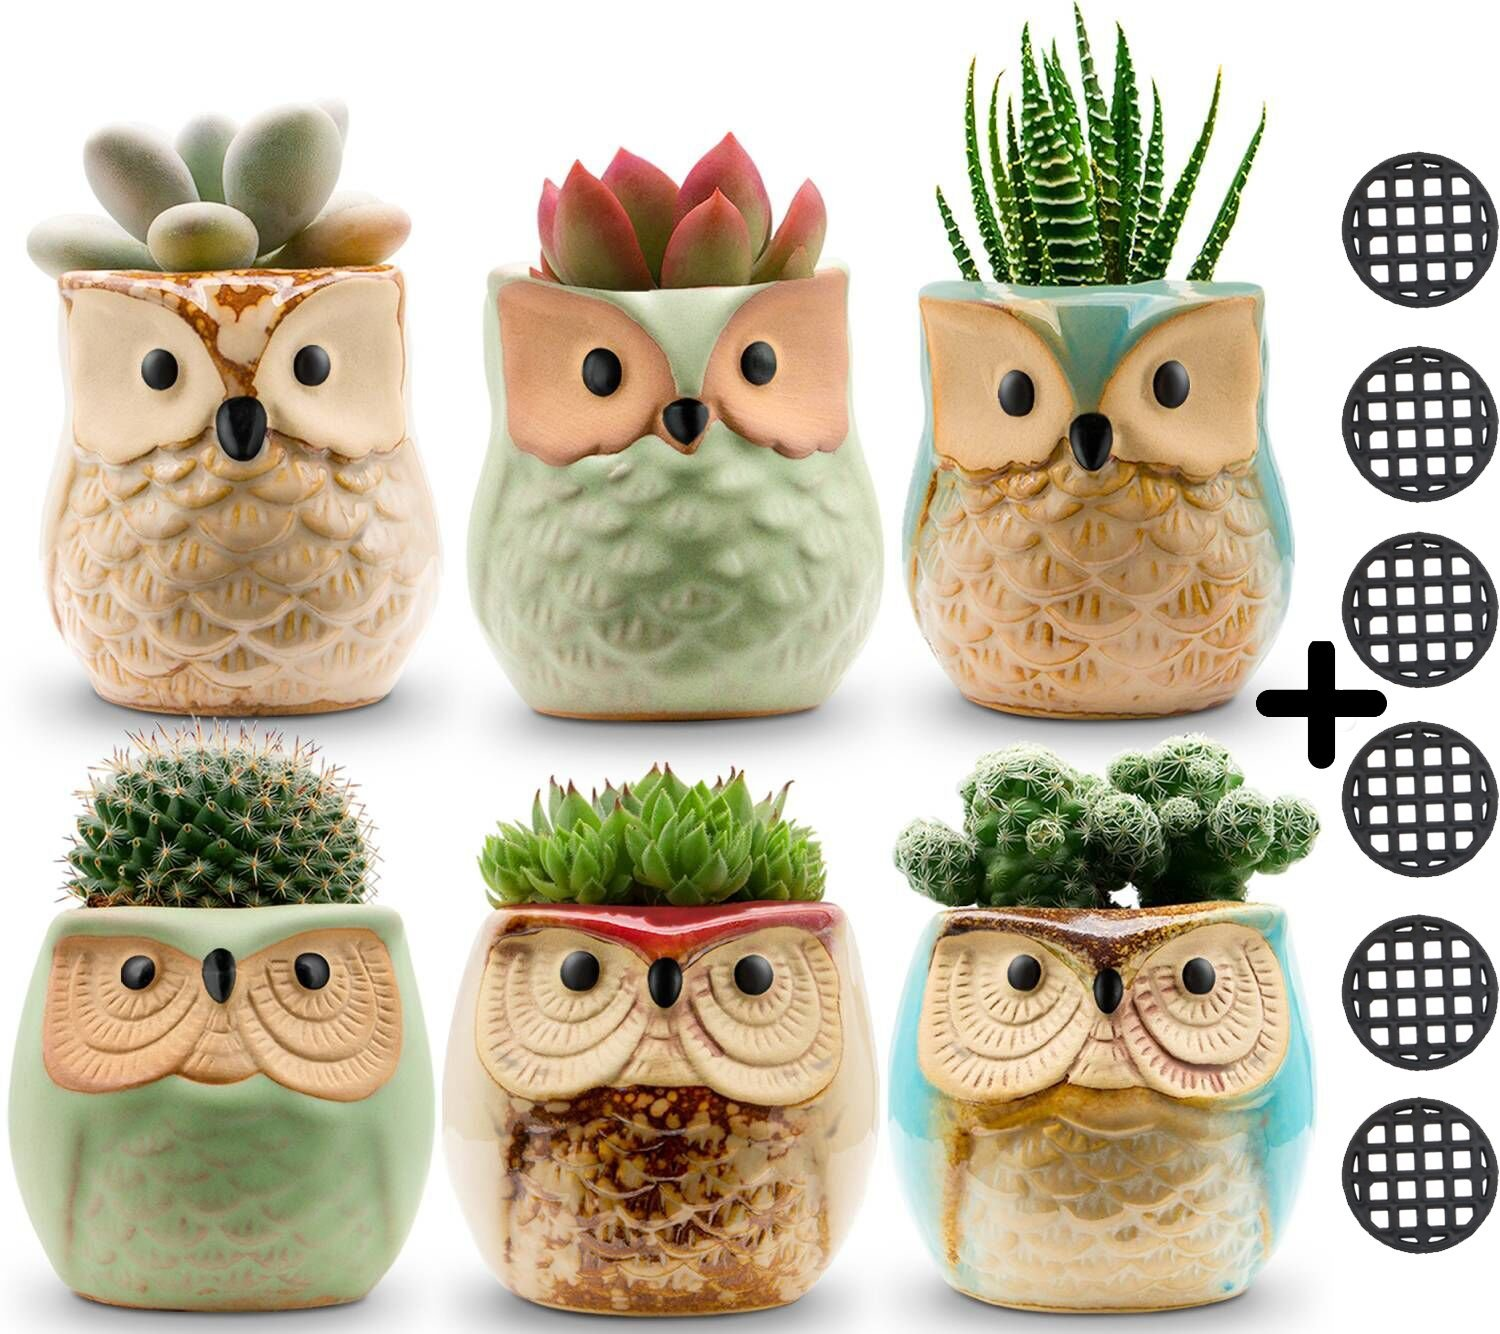 6pcs Owl Pot 2.5 Inch Succulent Plant Pot Mini Ceramic Flower Cactus Container Small Bonsai Pots with Hole by Jomass